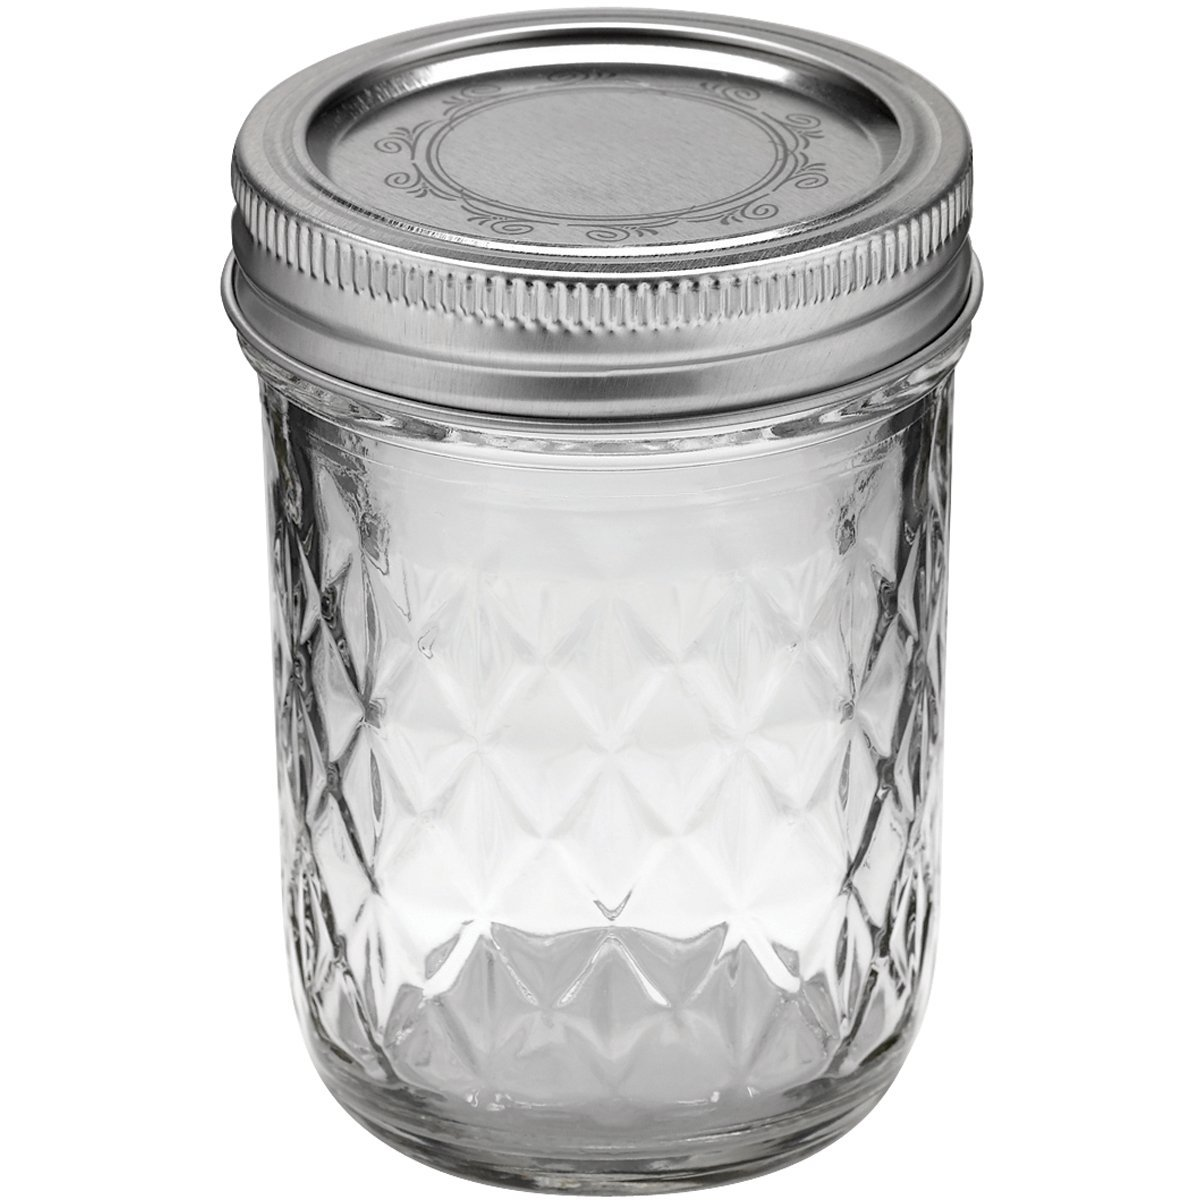 Ball Jelly Jars - 8 oz - Pack of 12